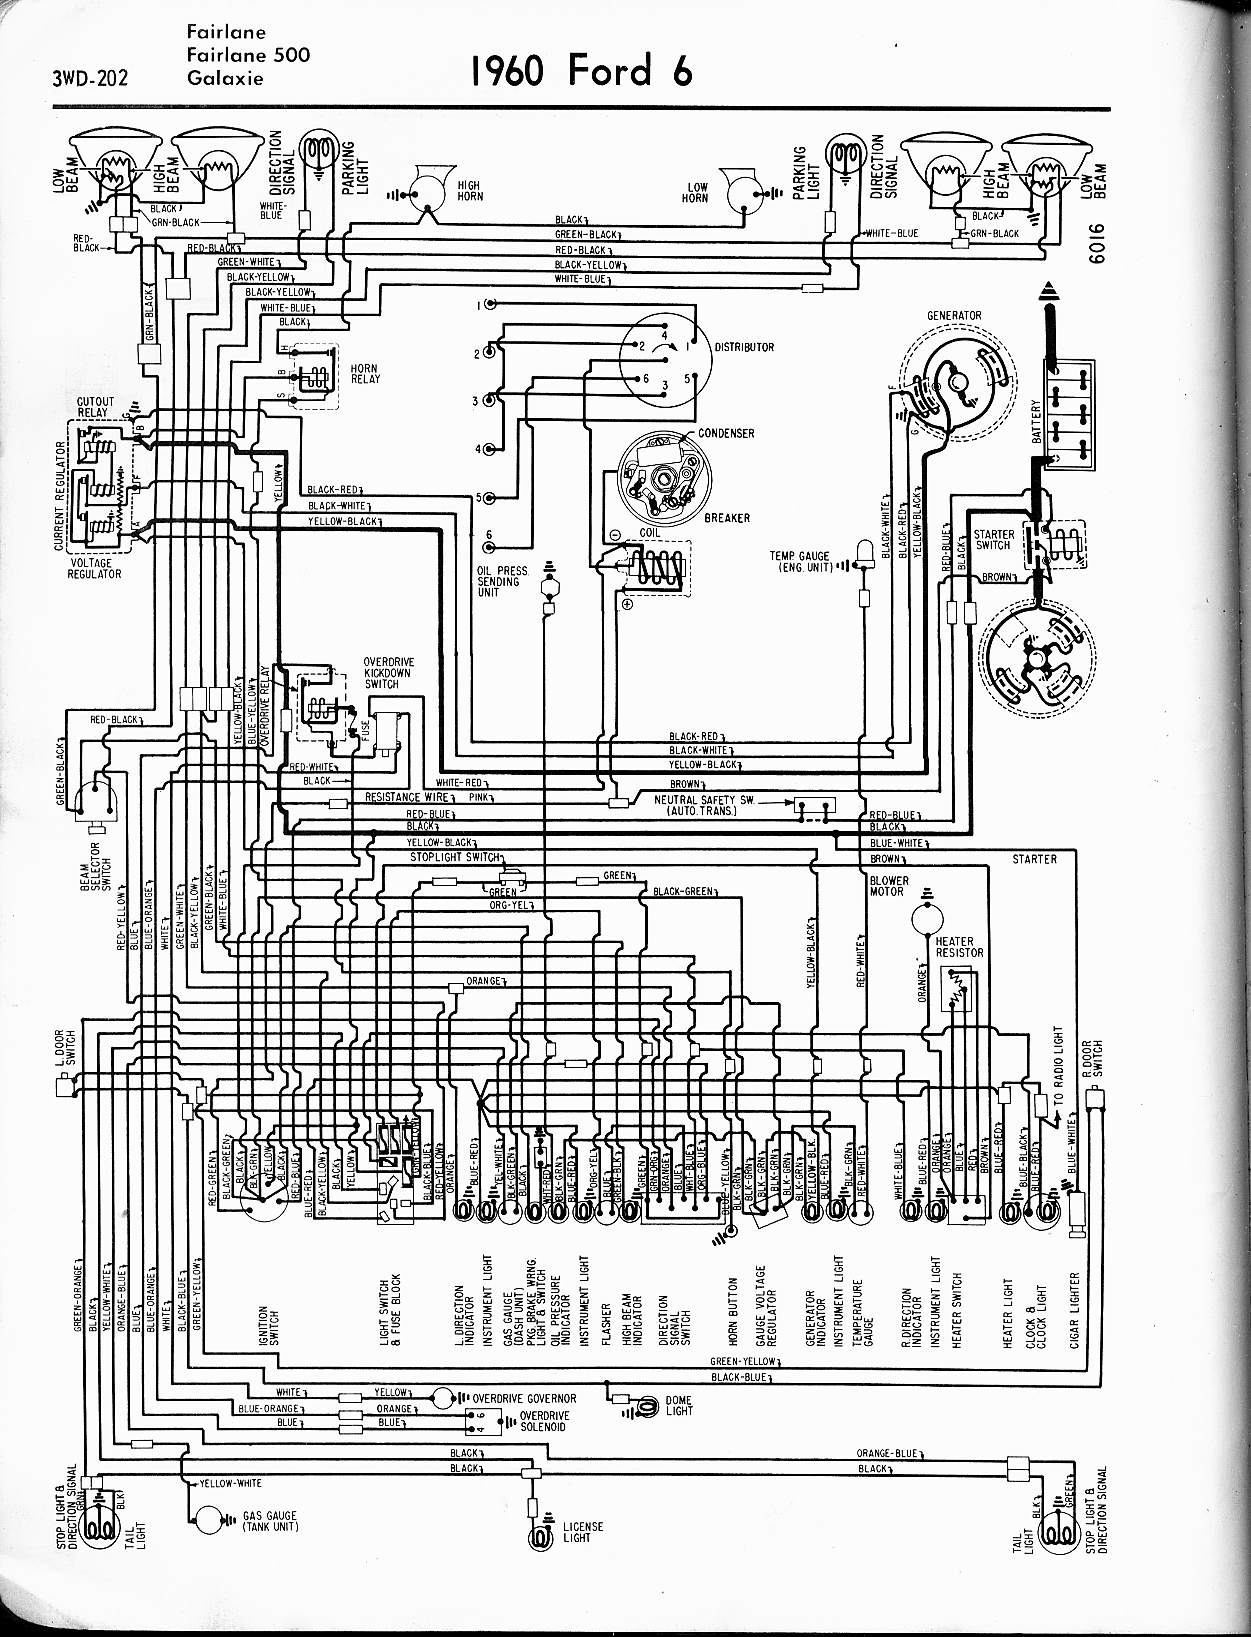 MWire5765 202 57 65 ford wiring diagrams 1954 ford wiring harness at fashall.co